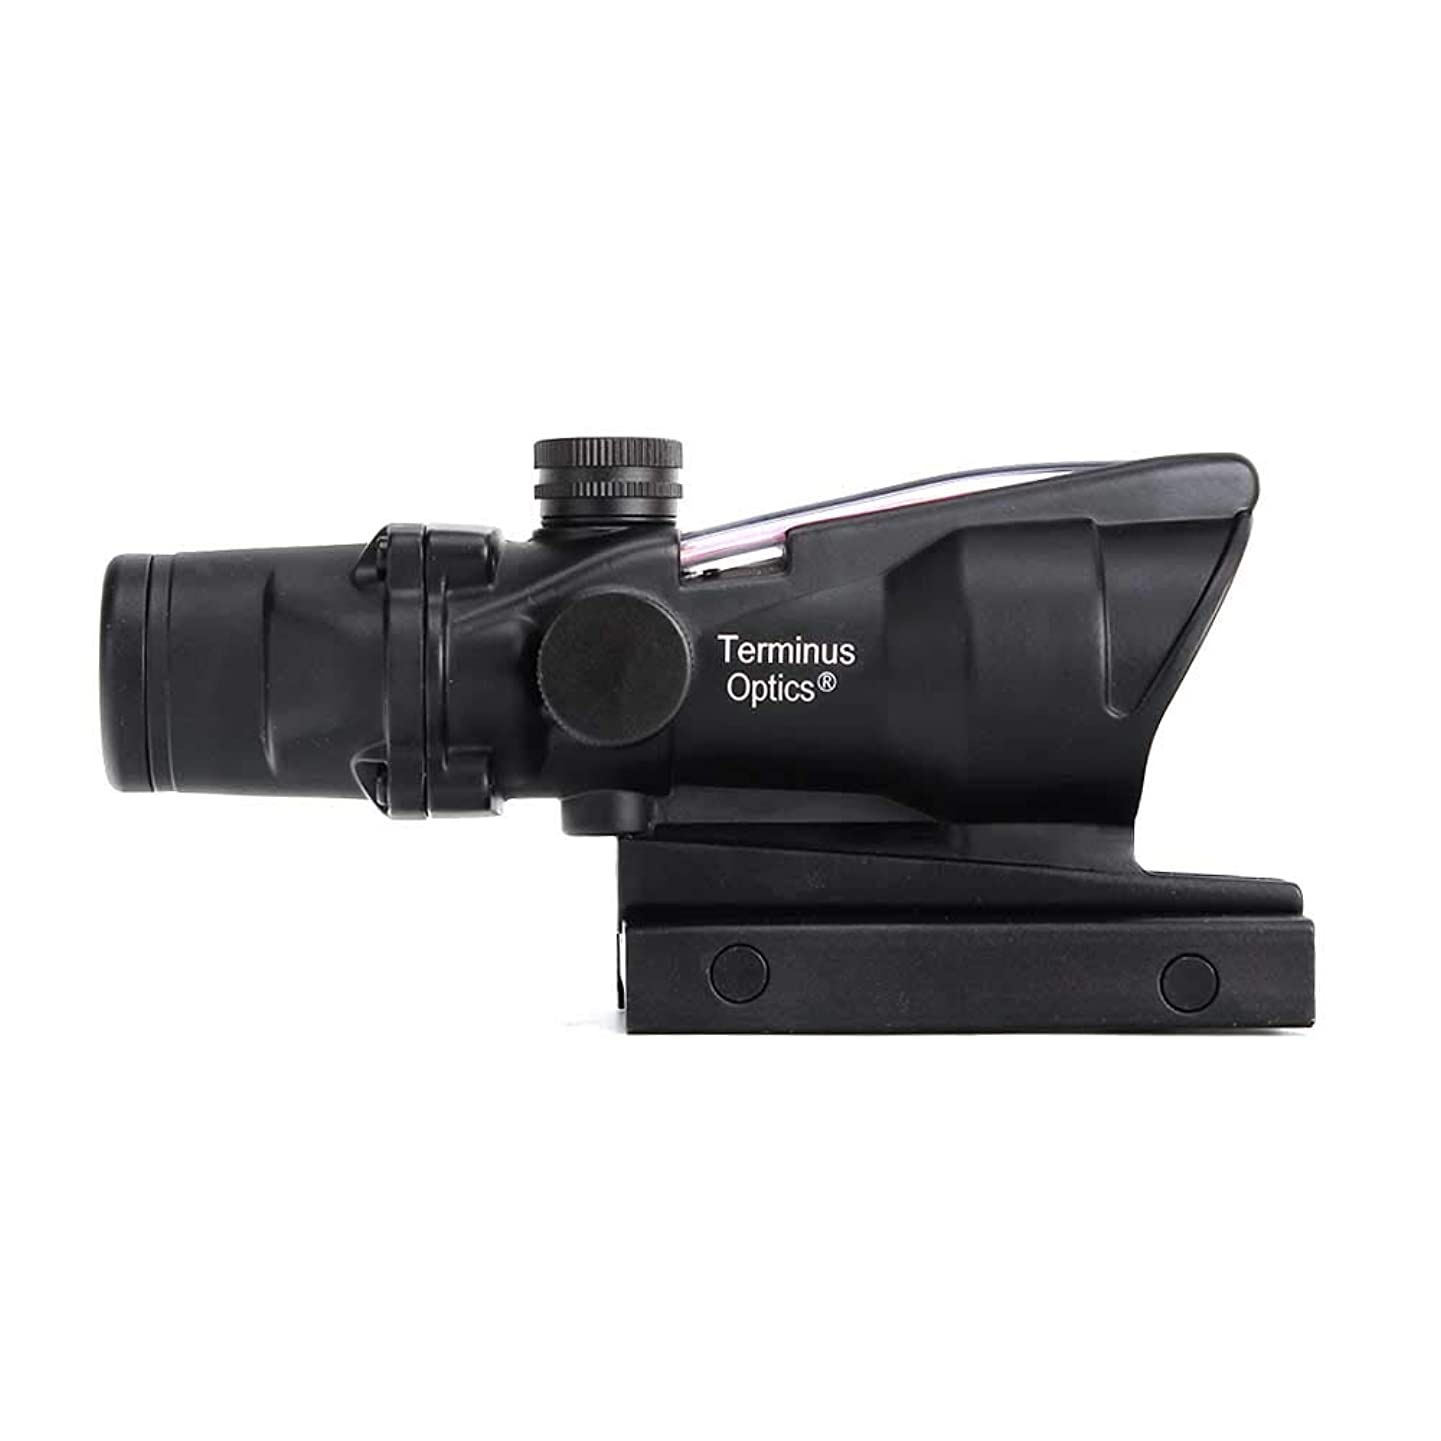 Terminus Optics Black TOC1 Chevron Reticle Green Fiber 4x32 Magnification Rifle Scope Terminus LLC